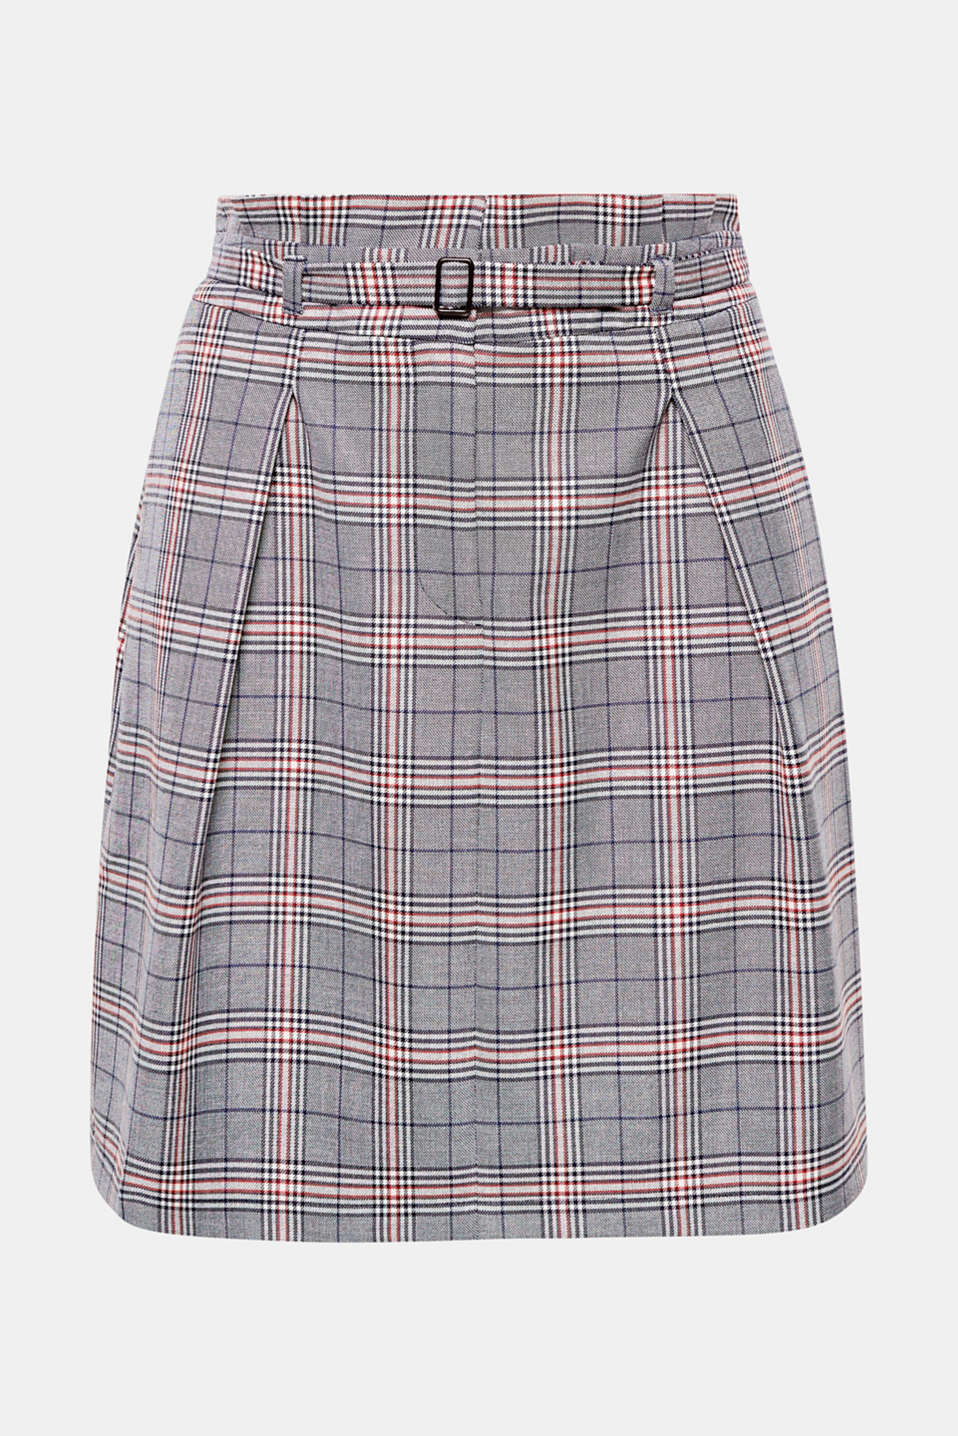 Let your waist takes centre stage with this short glencheck skirt featuring a high waistband with pleats and a narrow belt!